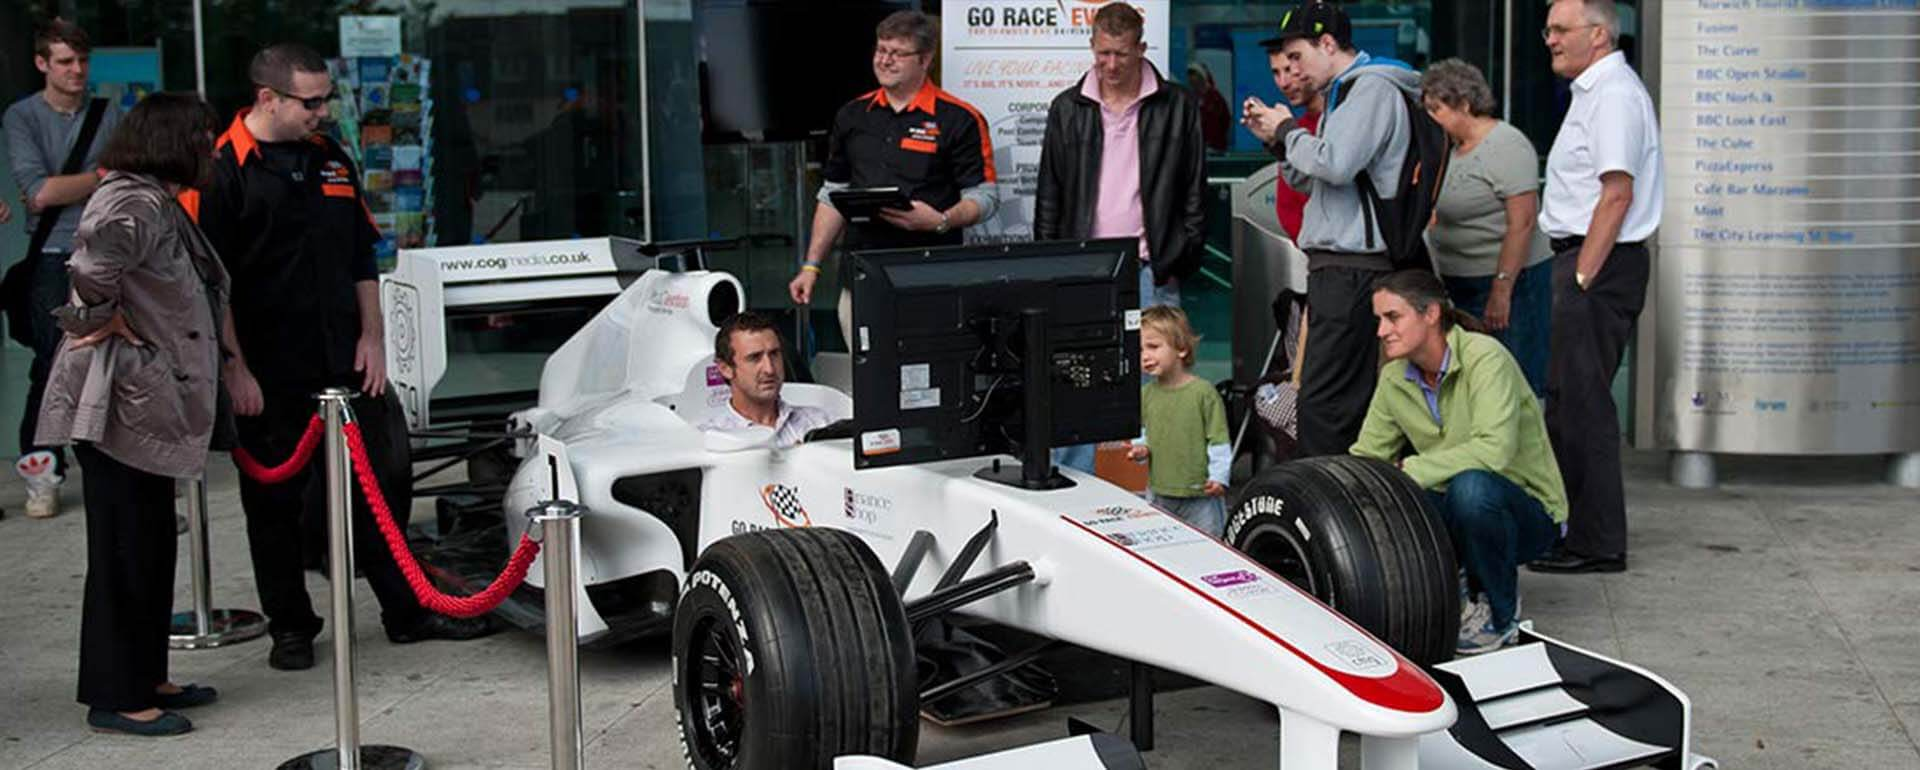 Go Race Events F1 Simulator